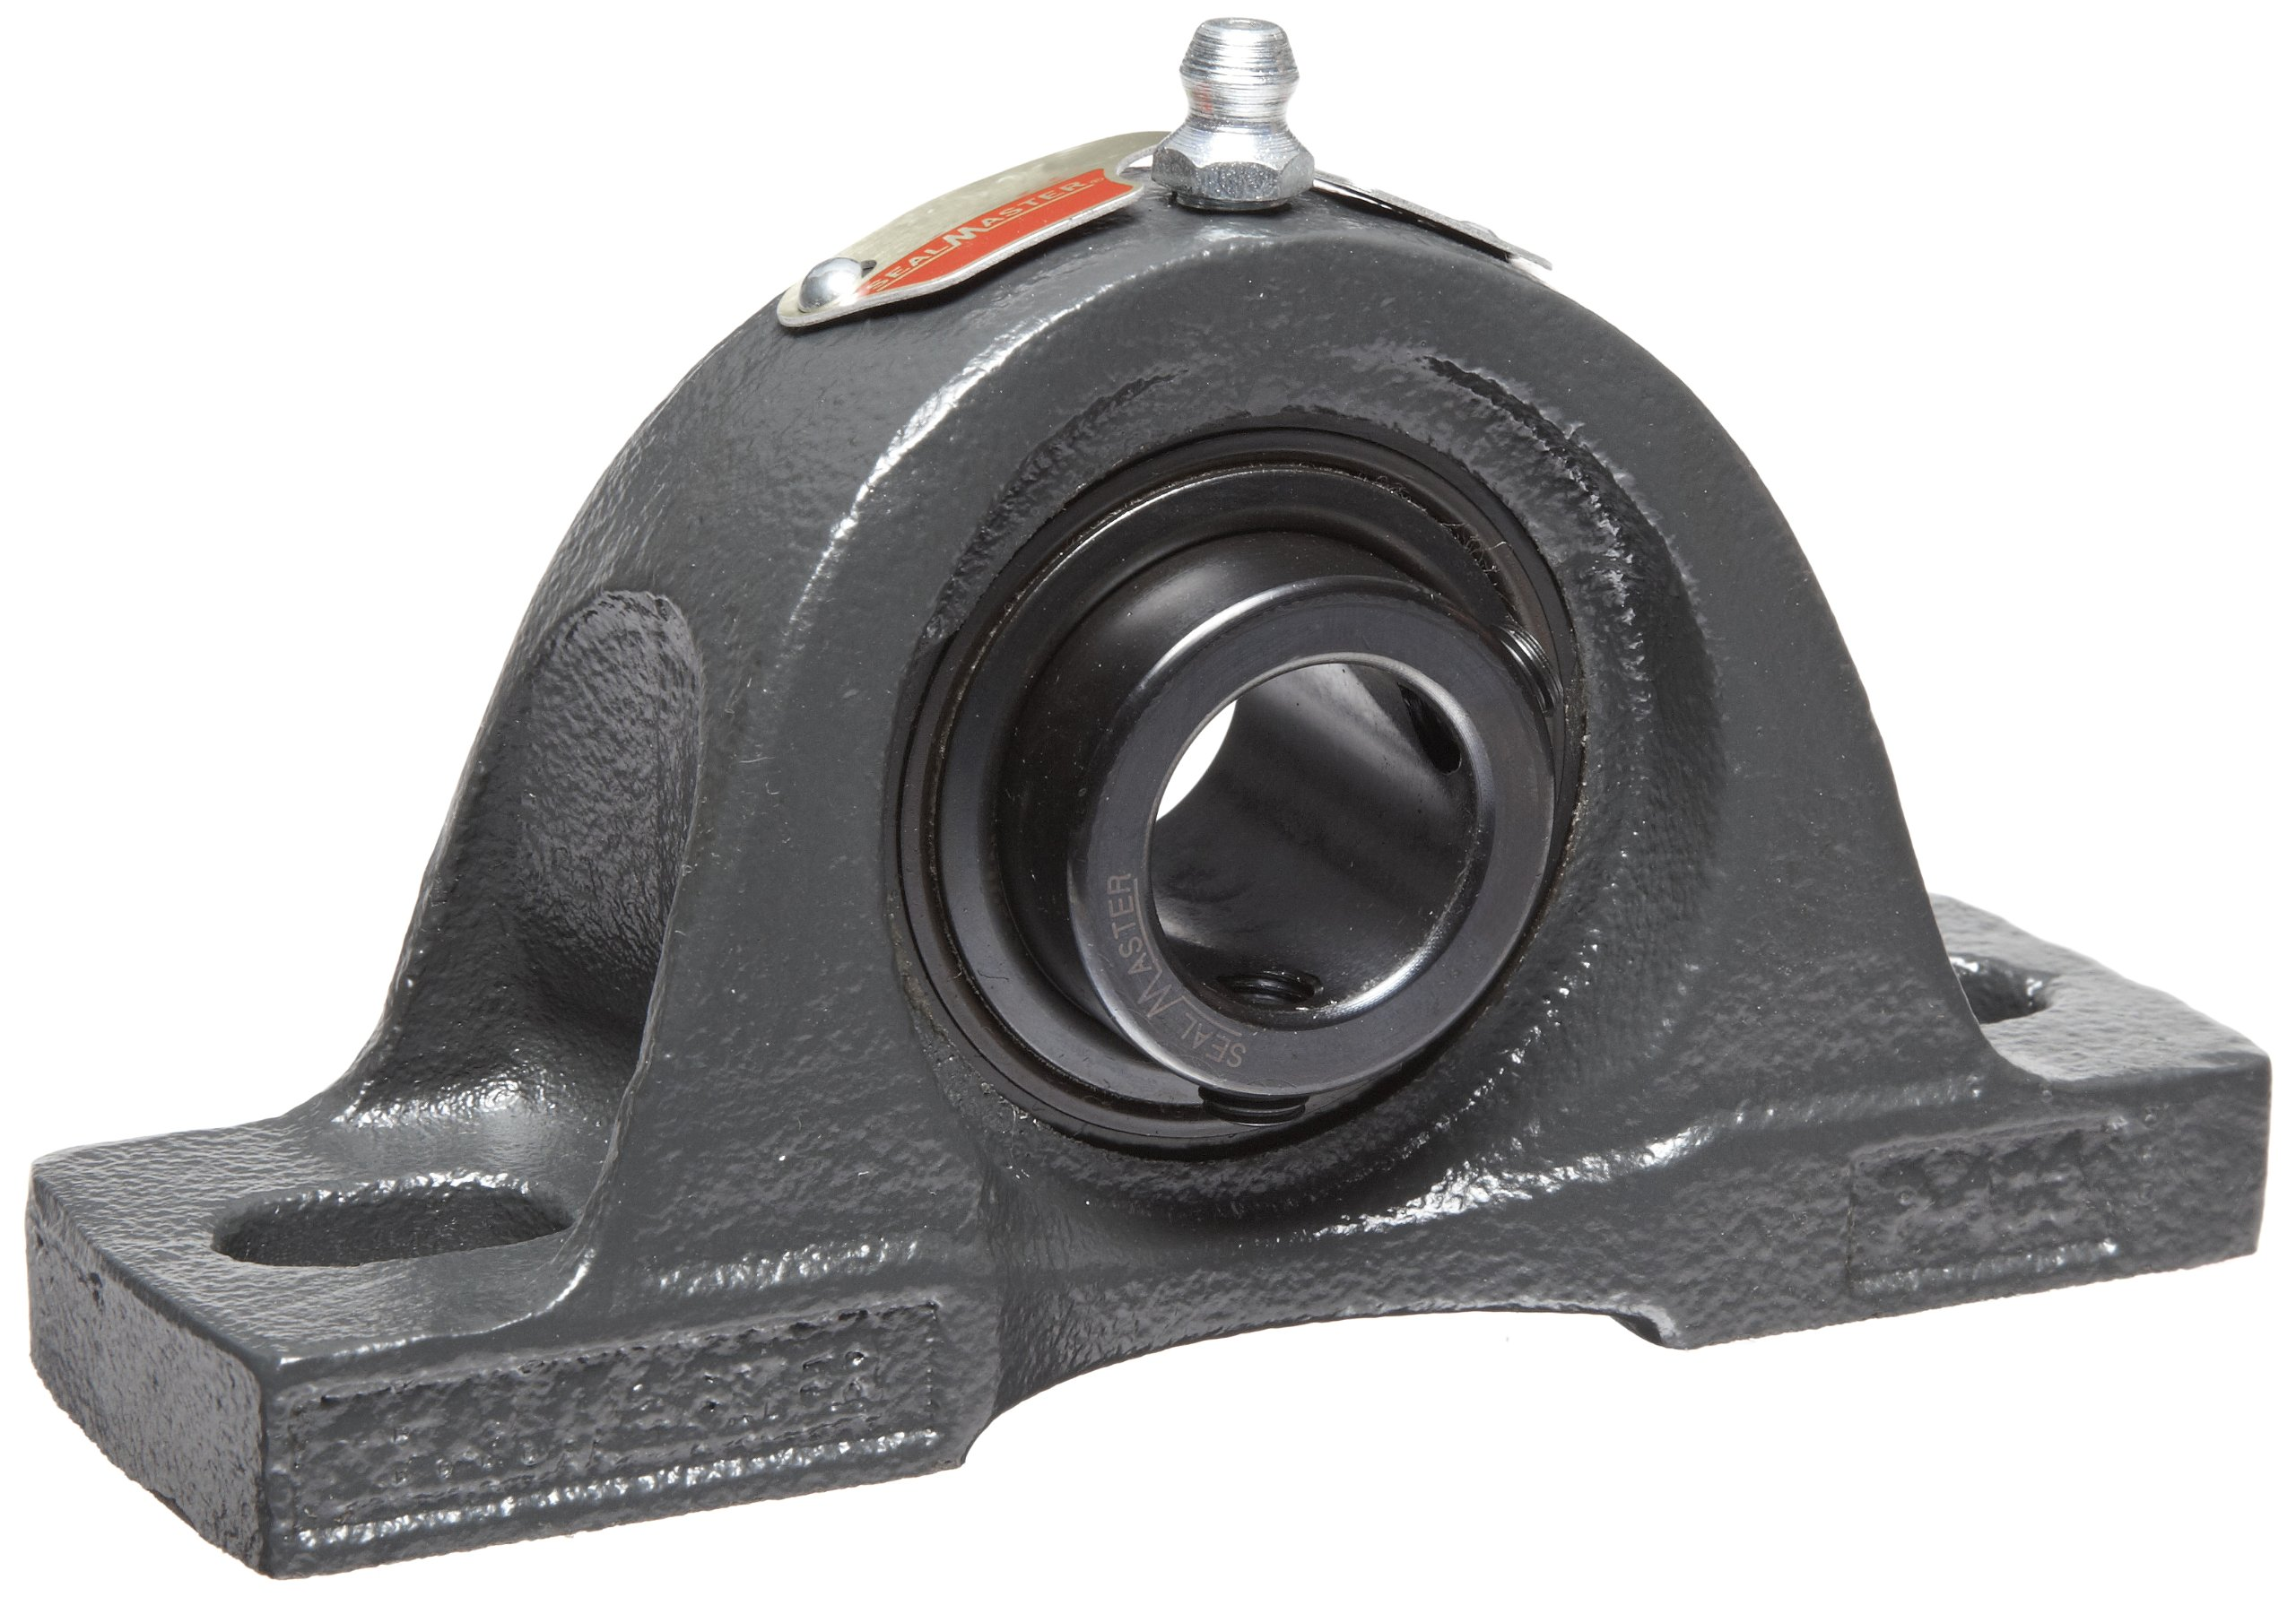 """Sealmaster NP-204 Pillow Block Ball Bearing, Non-Expansion Type, Normal-Duty, Regreasable, Setscrew Locking Collar, Felt Seals, Cast Iron Housing, 20mm Bore, 1-5/16"""" Base to Center Height, 3-3/4"""" Bolt Hole Spacing Width"""